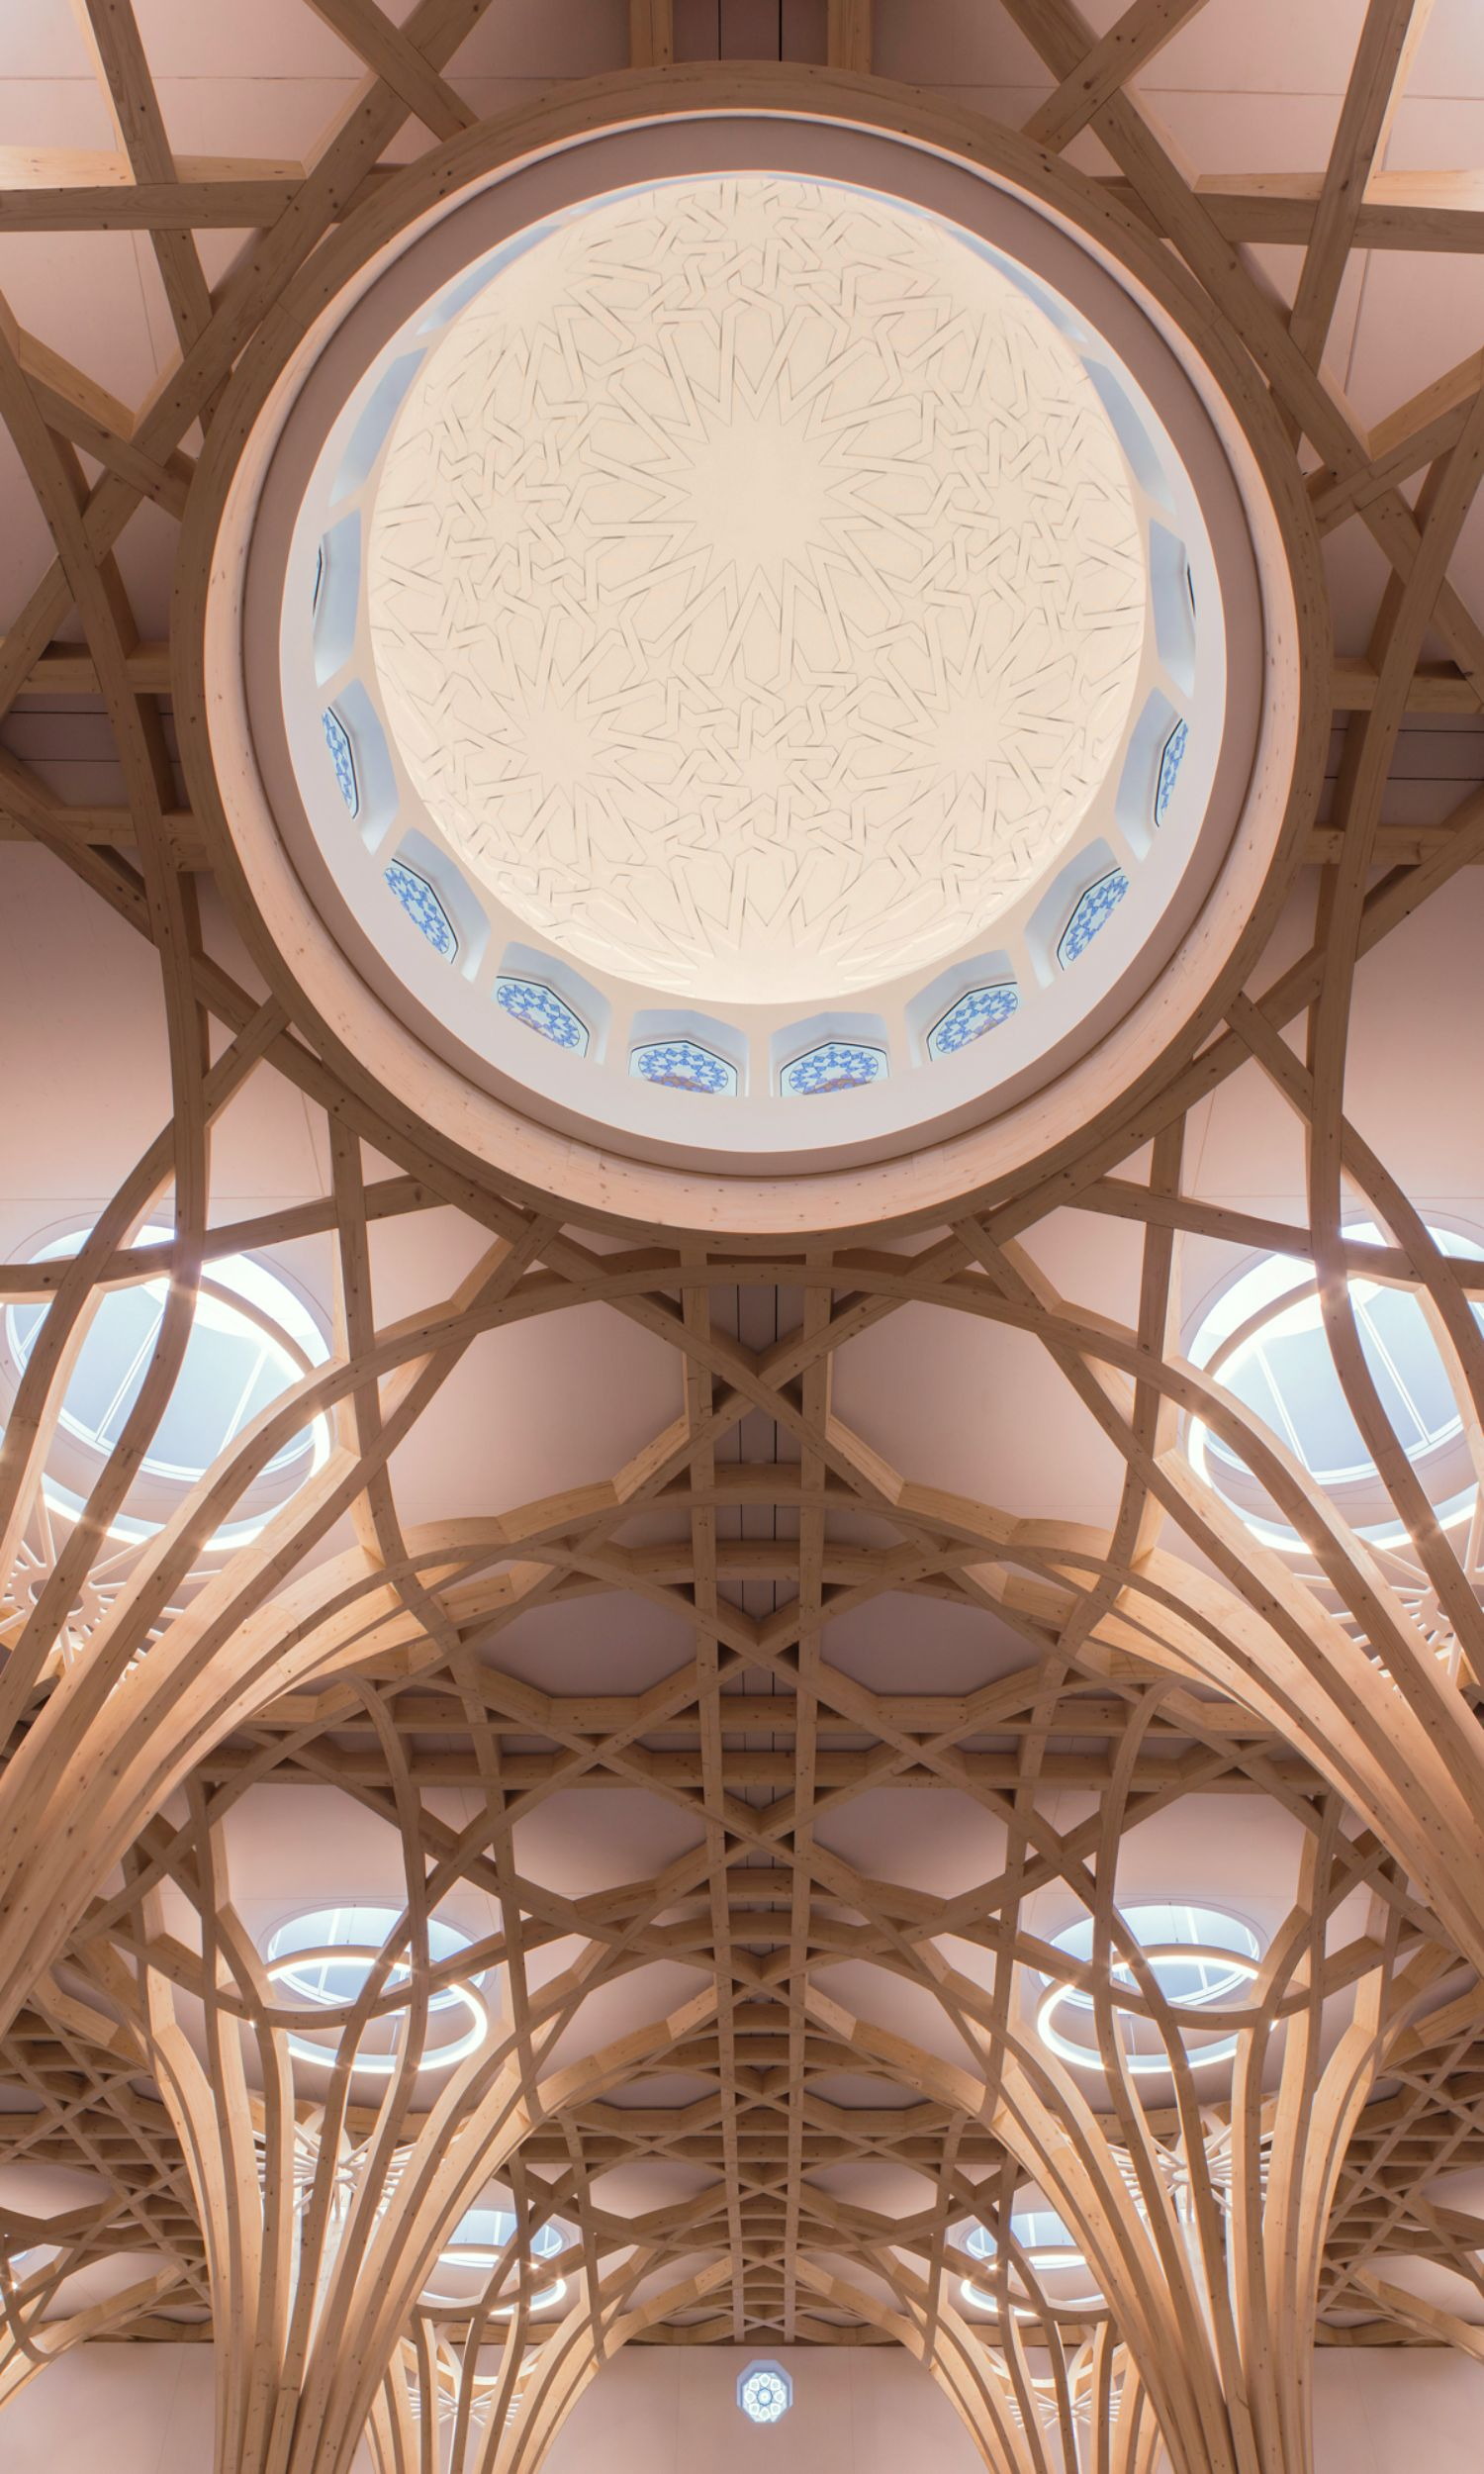 Photograph taken beneath the dome of the Cambridge Mosque from the inside. The tree-like wooden supporting structures can be seen around the dome.